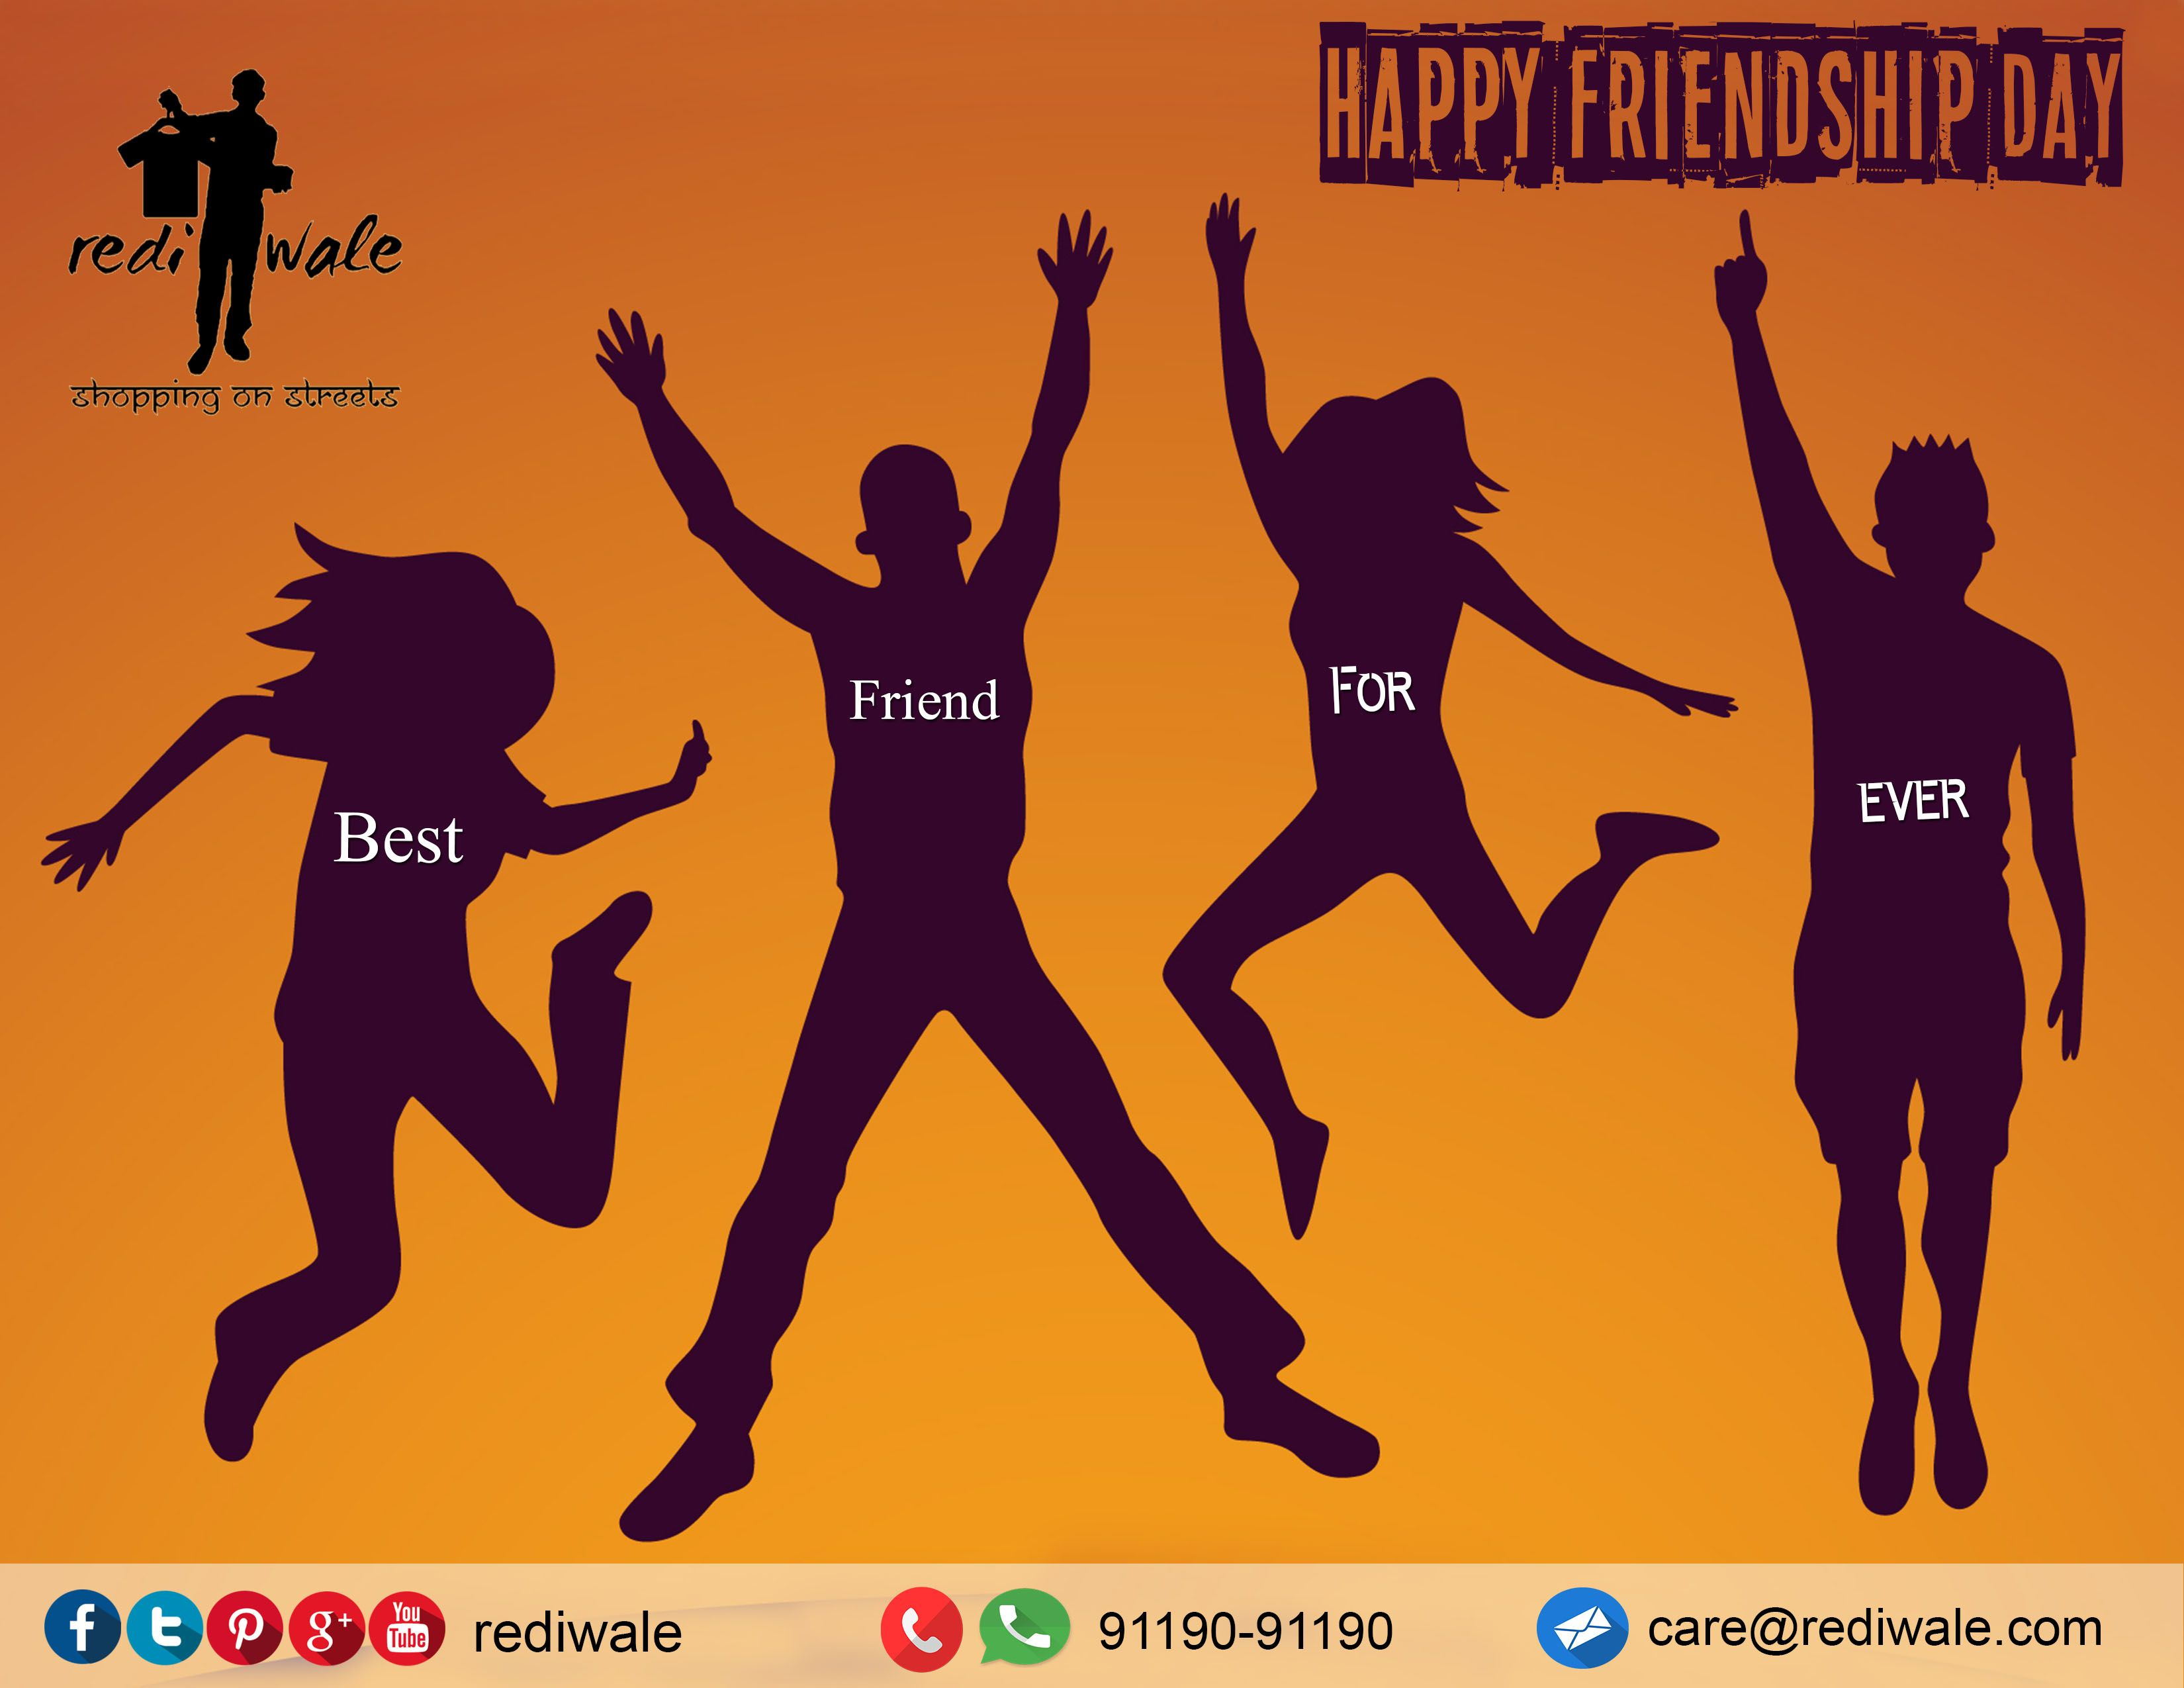 Rediwale Wishes Happyfriendshipday To Our Best Friends Who Are